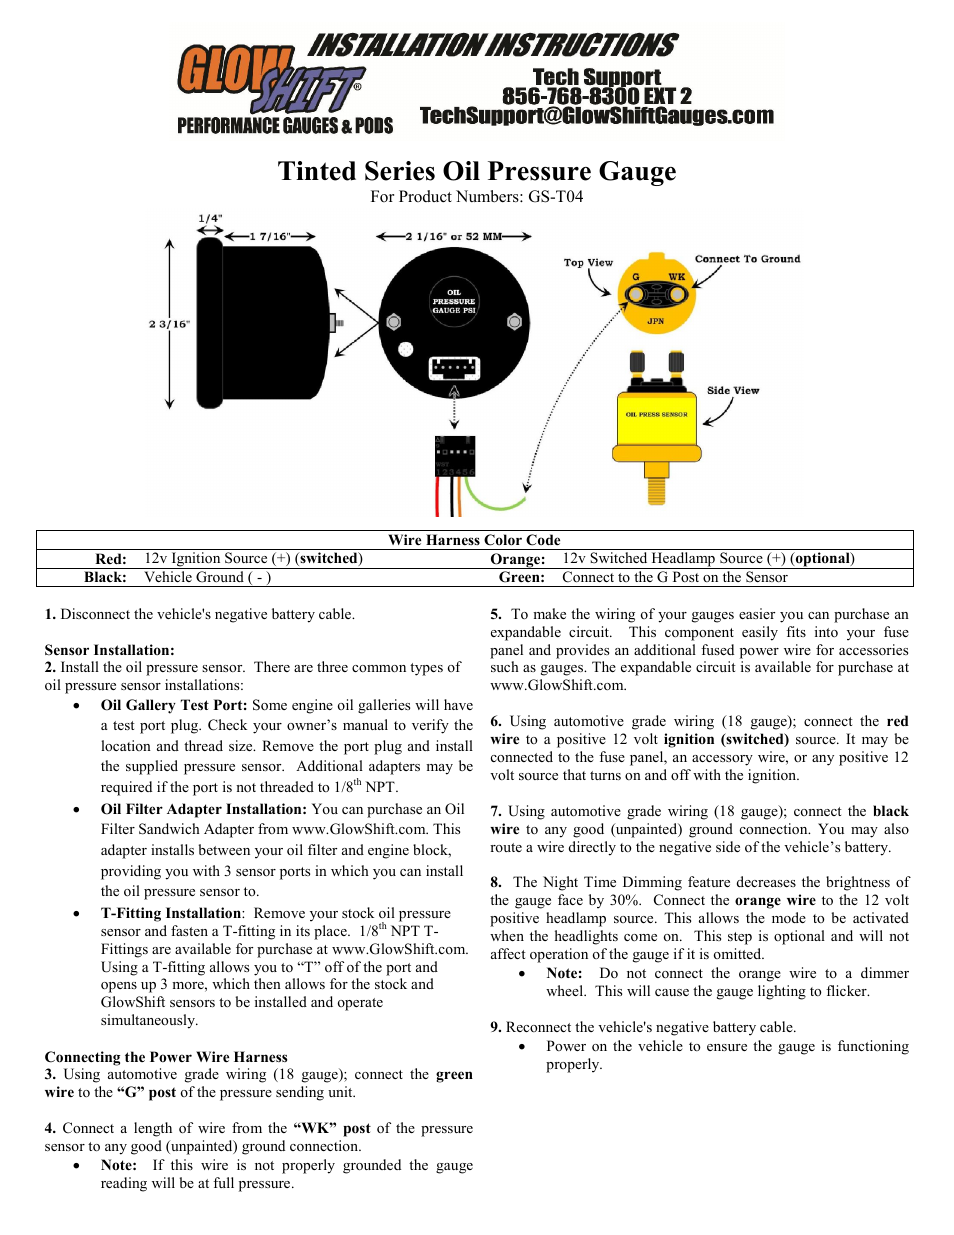 Glowshift Oil Pressure Gauge User Manual